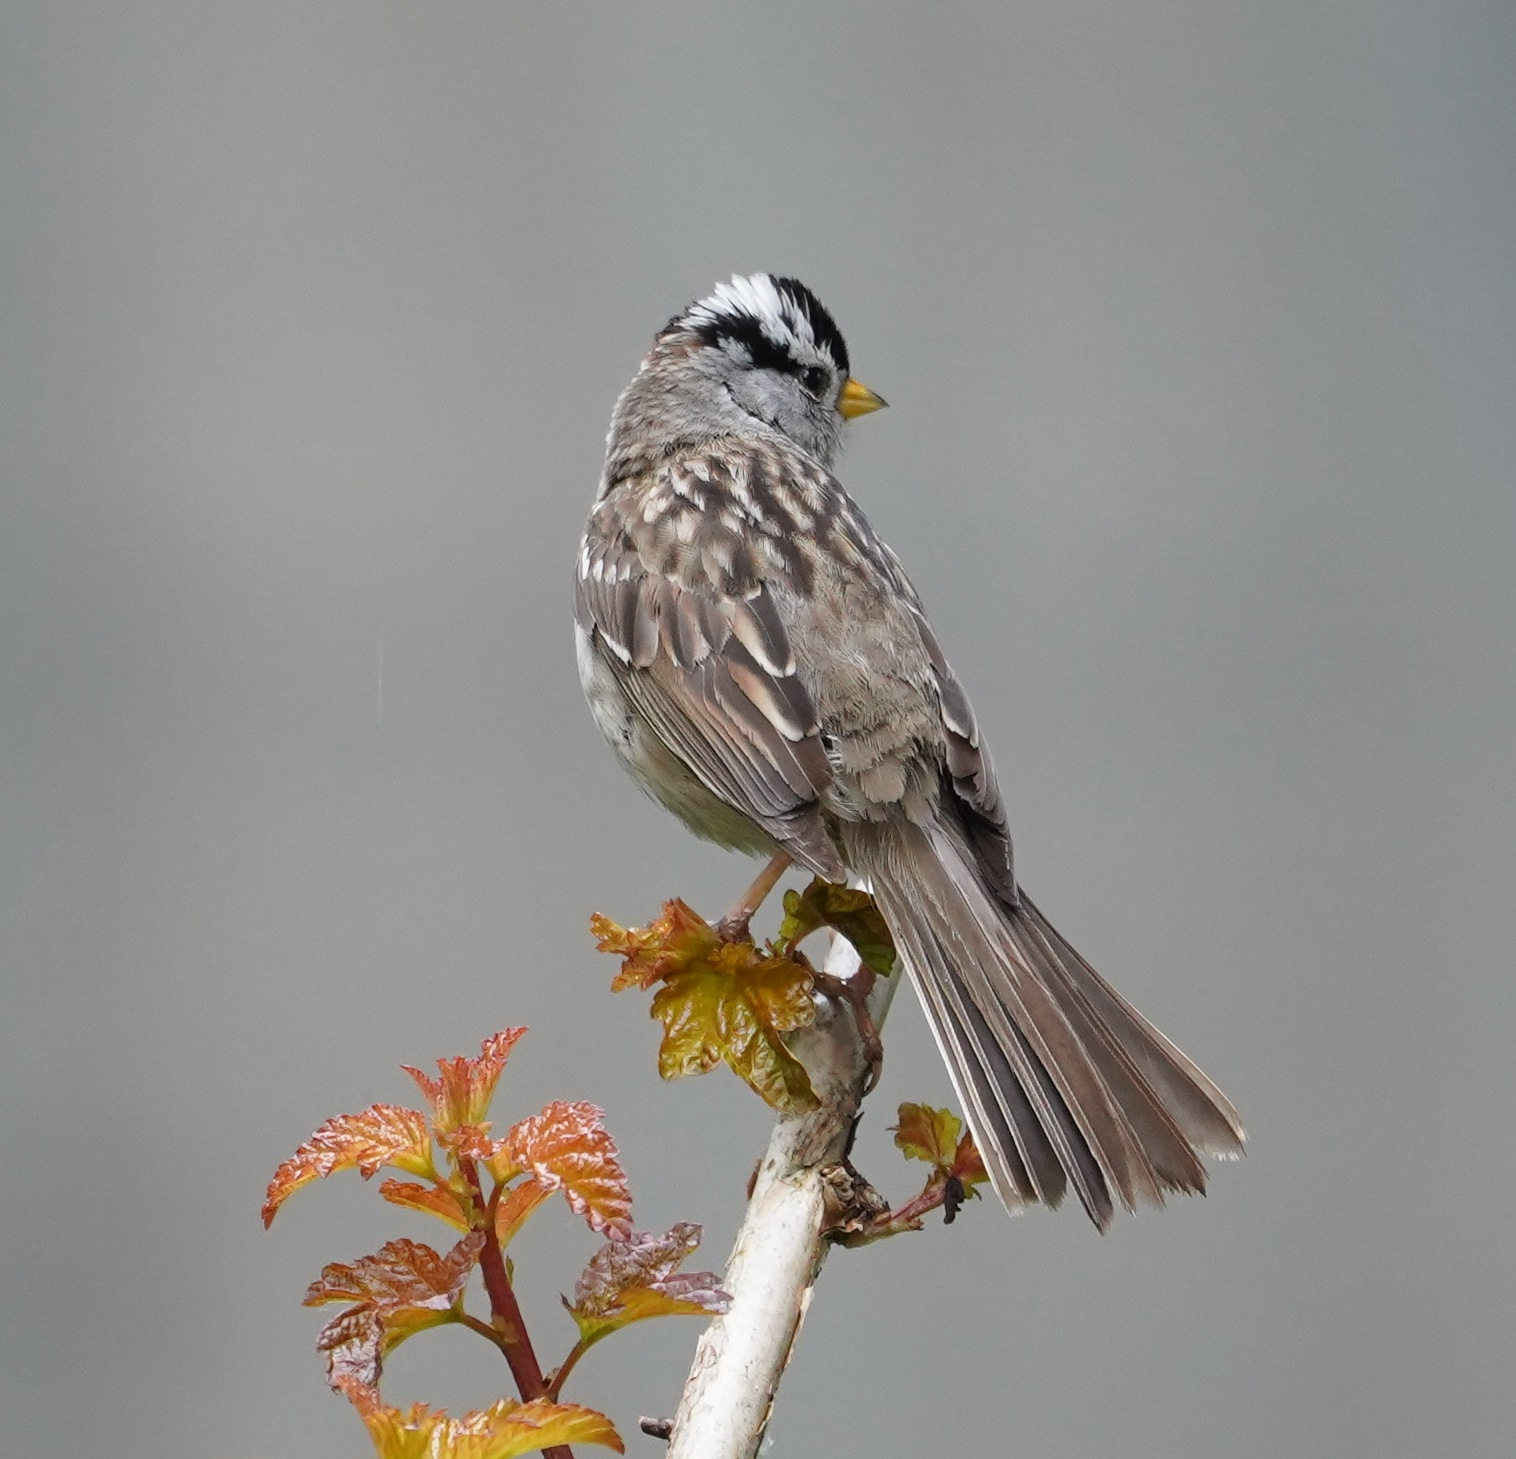 White-crowned sparrow posing